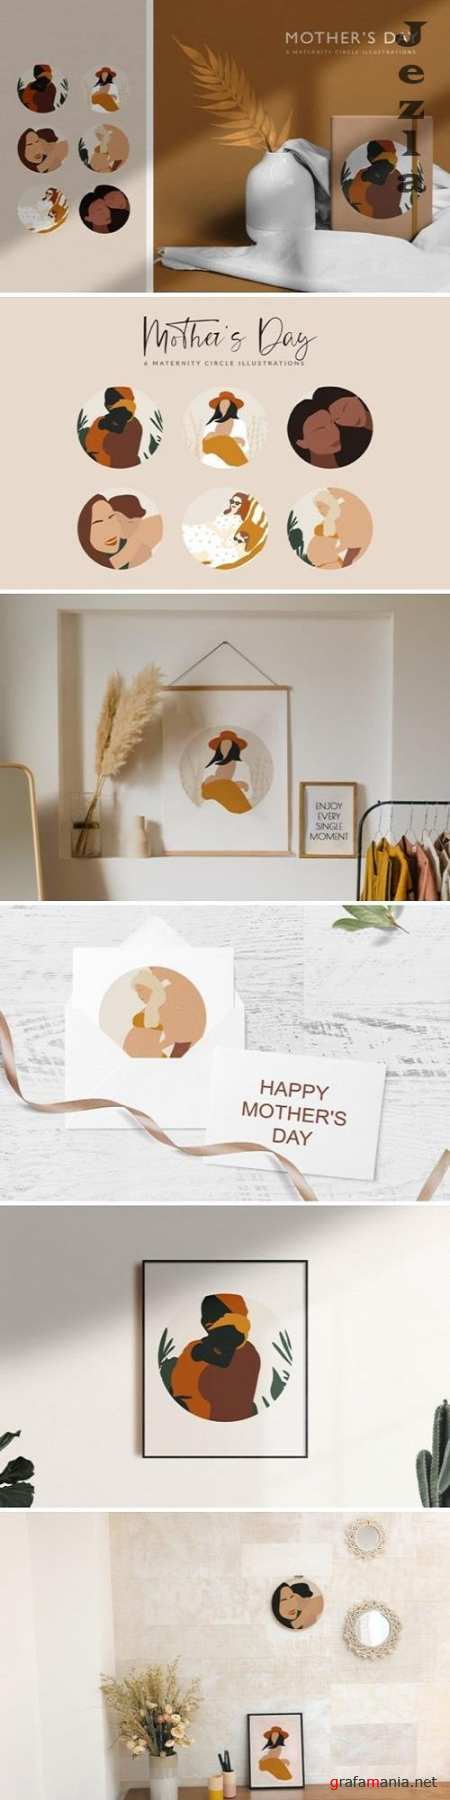 Mother's Day Abstract Illustrations - 4748020